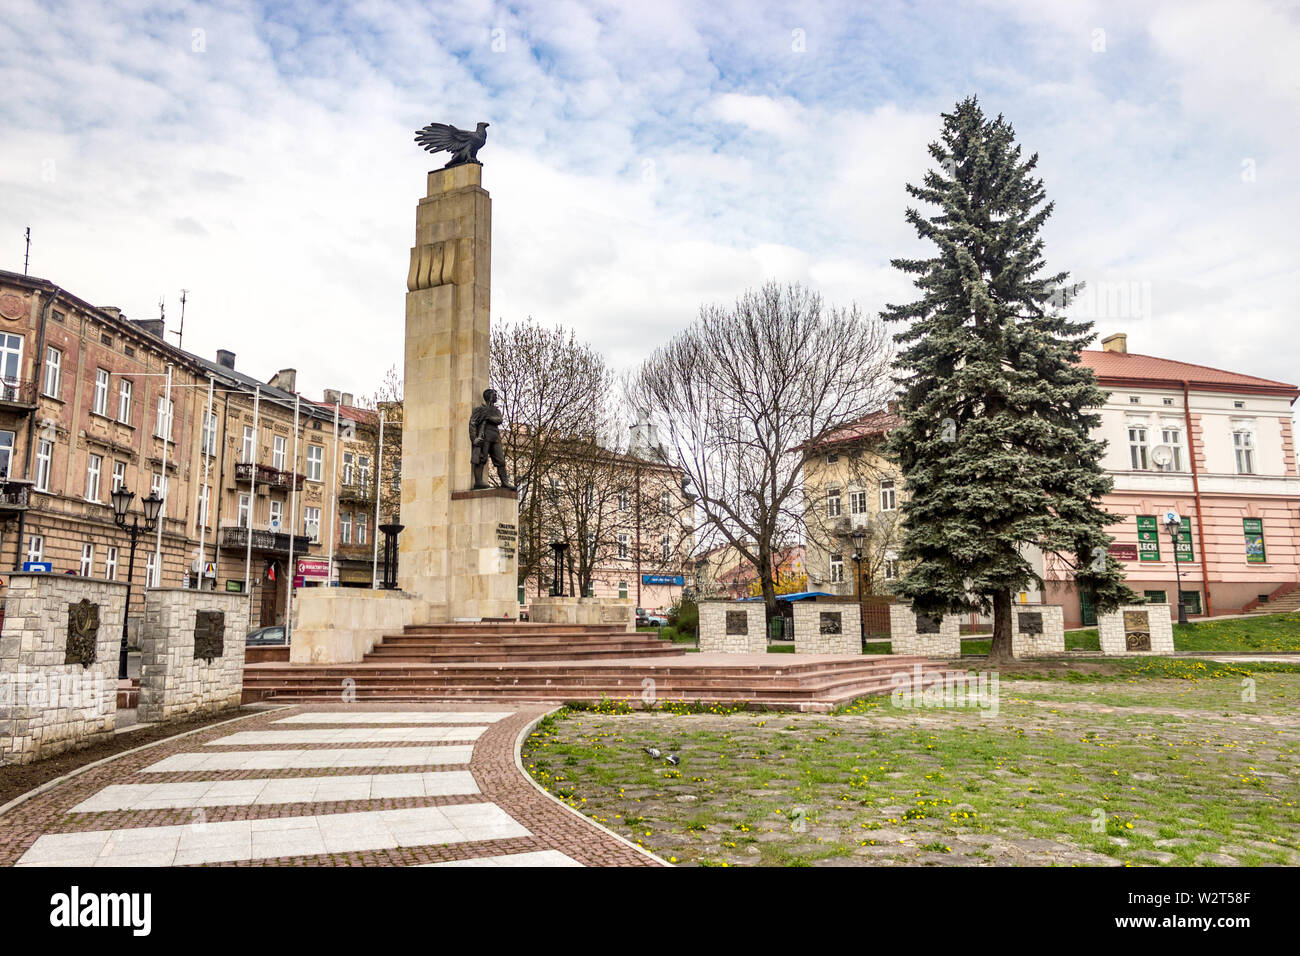 Przemysl, Poland, - April 13, 2019. The Monument of Przemysl Eaglets commemorates young soldiers who defended the city against Ukrainian and Russian a - Stock Image